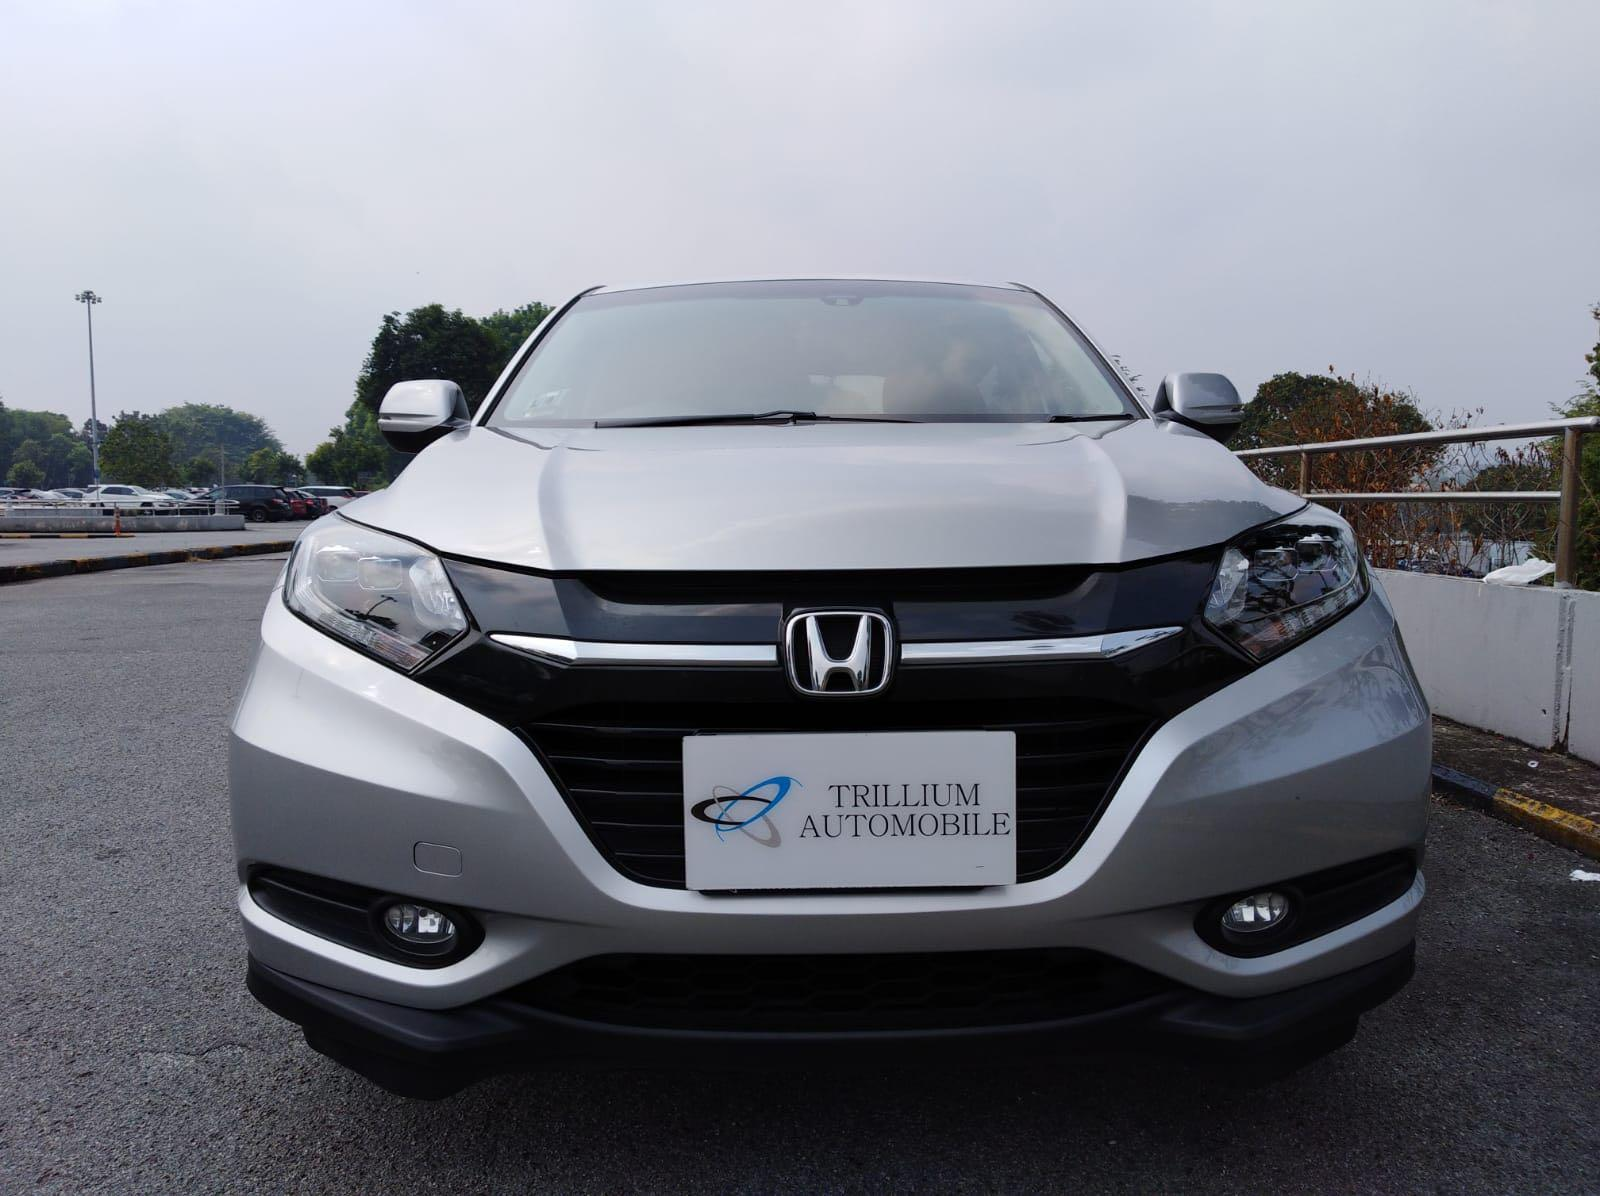 Honda Vezel 1.5A for Rent!